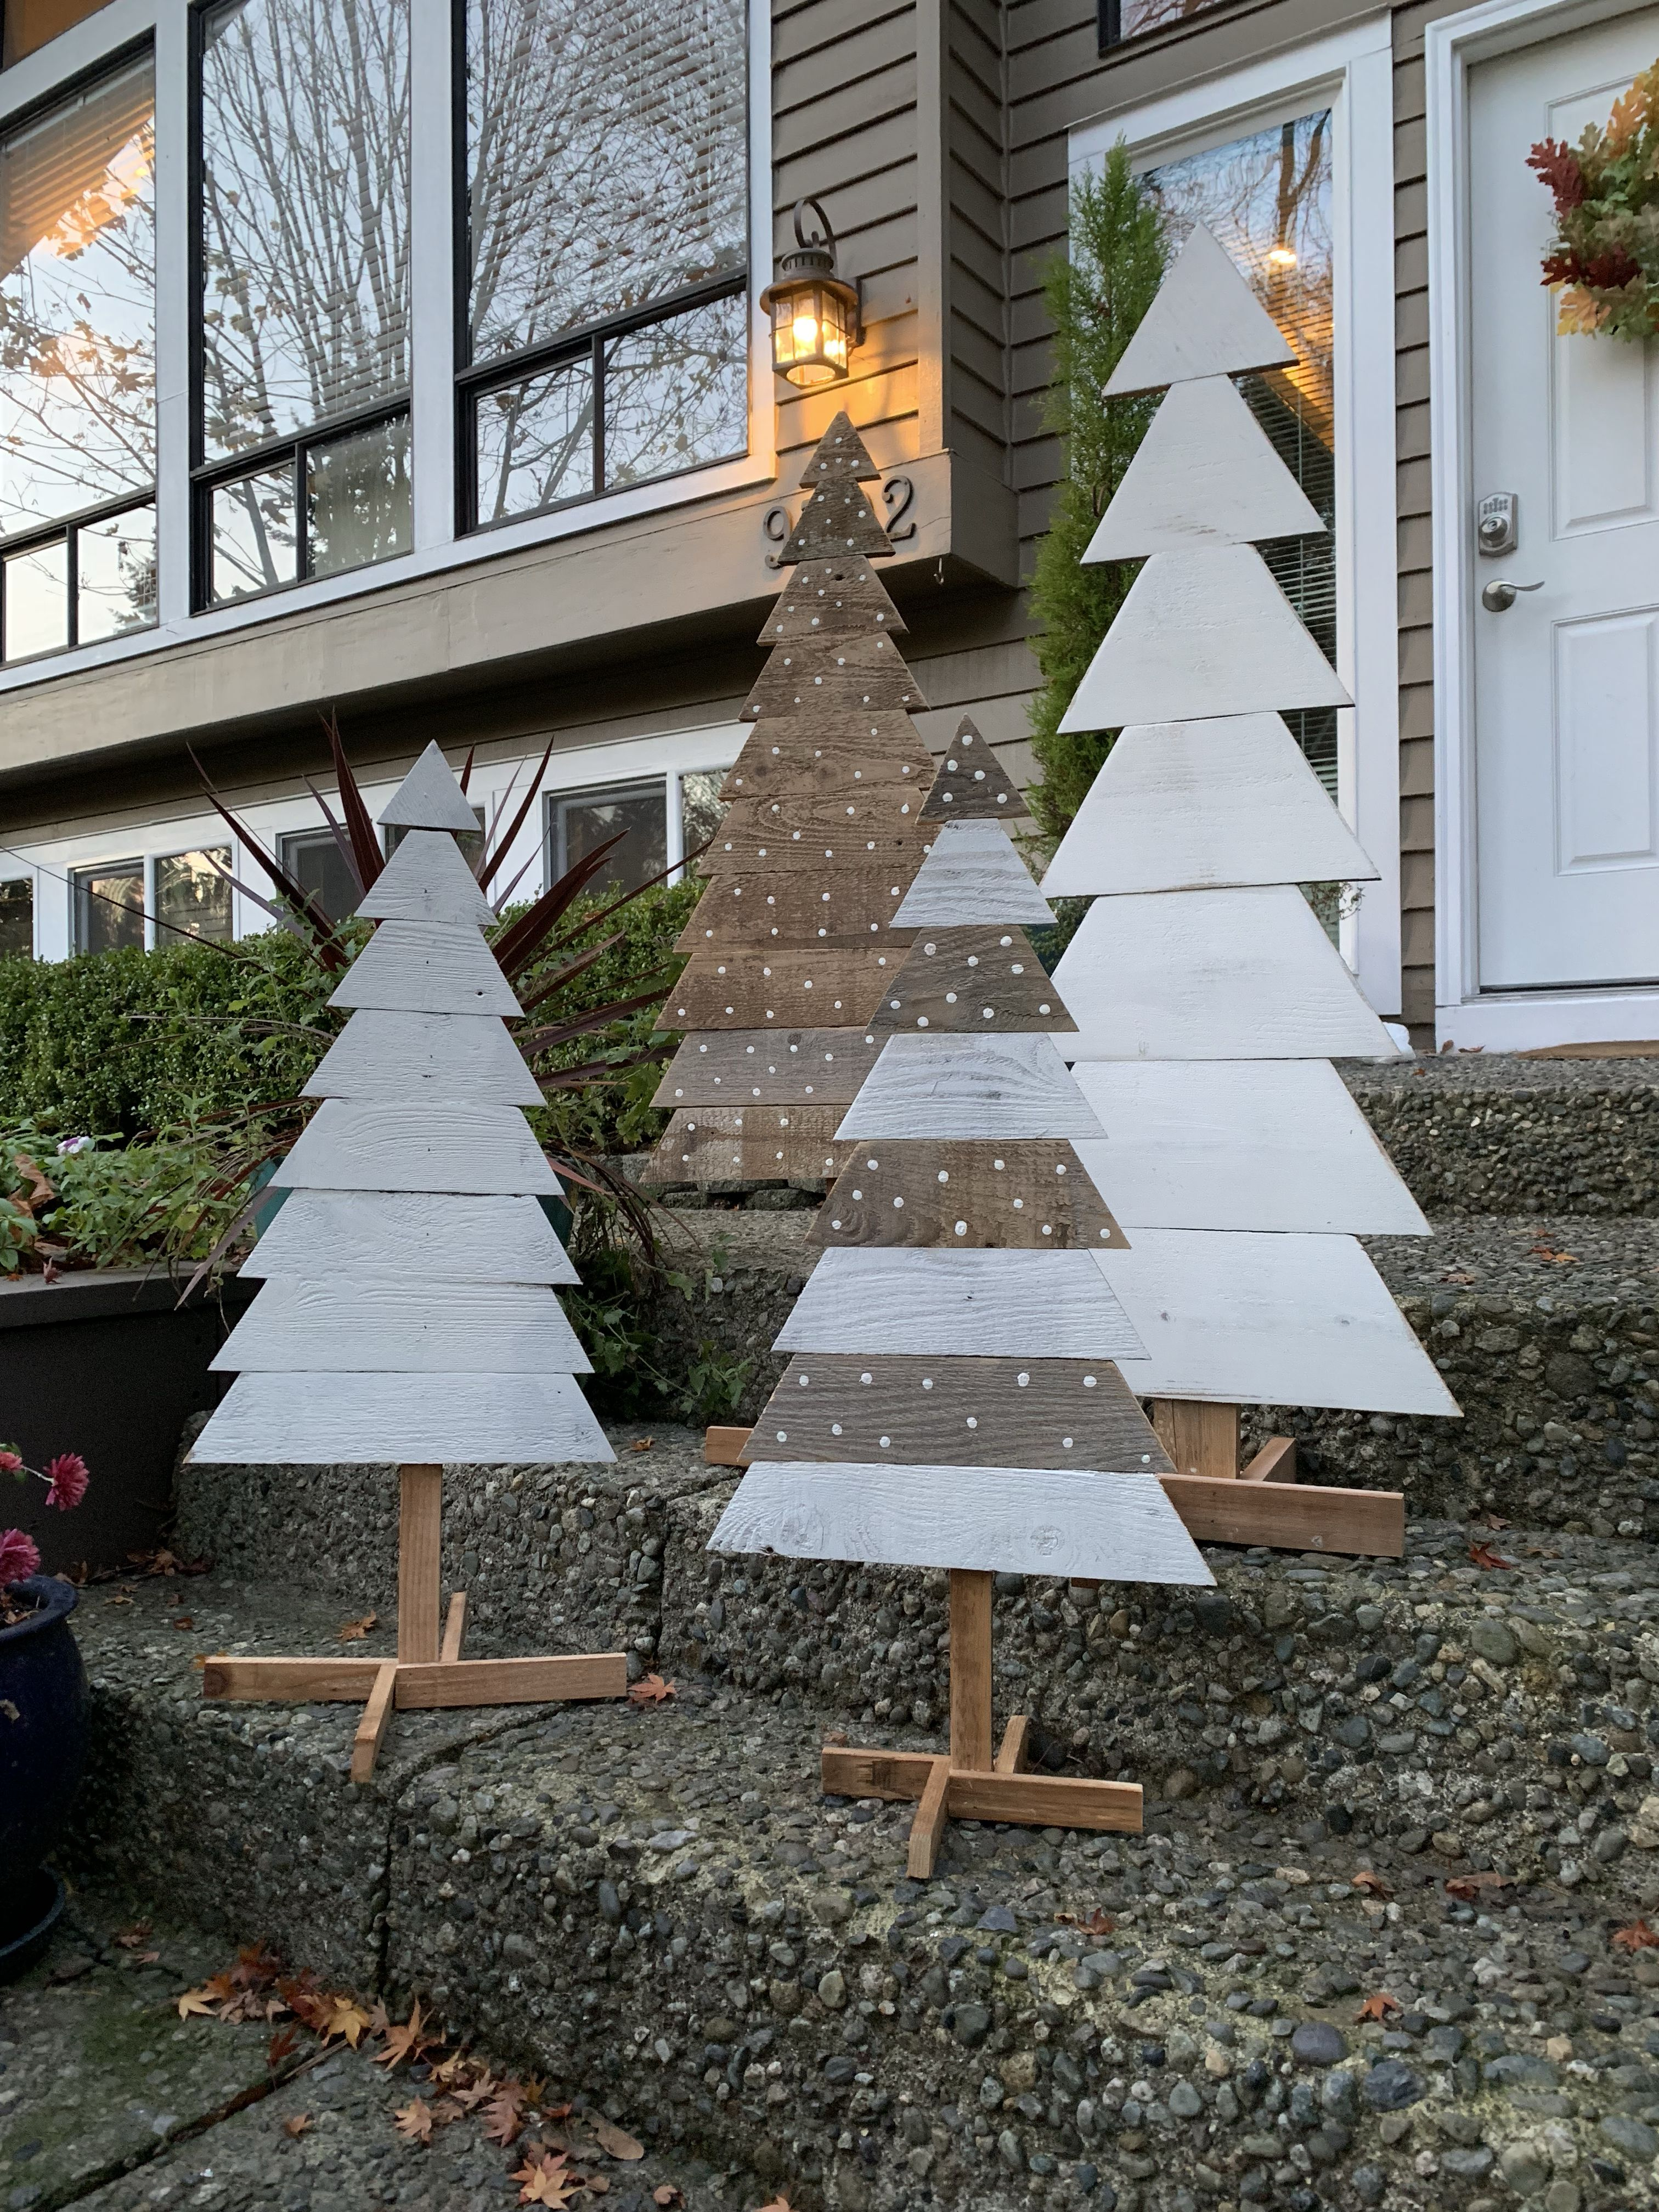 I loved making these pallet trees, visit my Instagram page